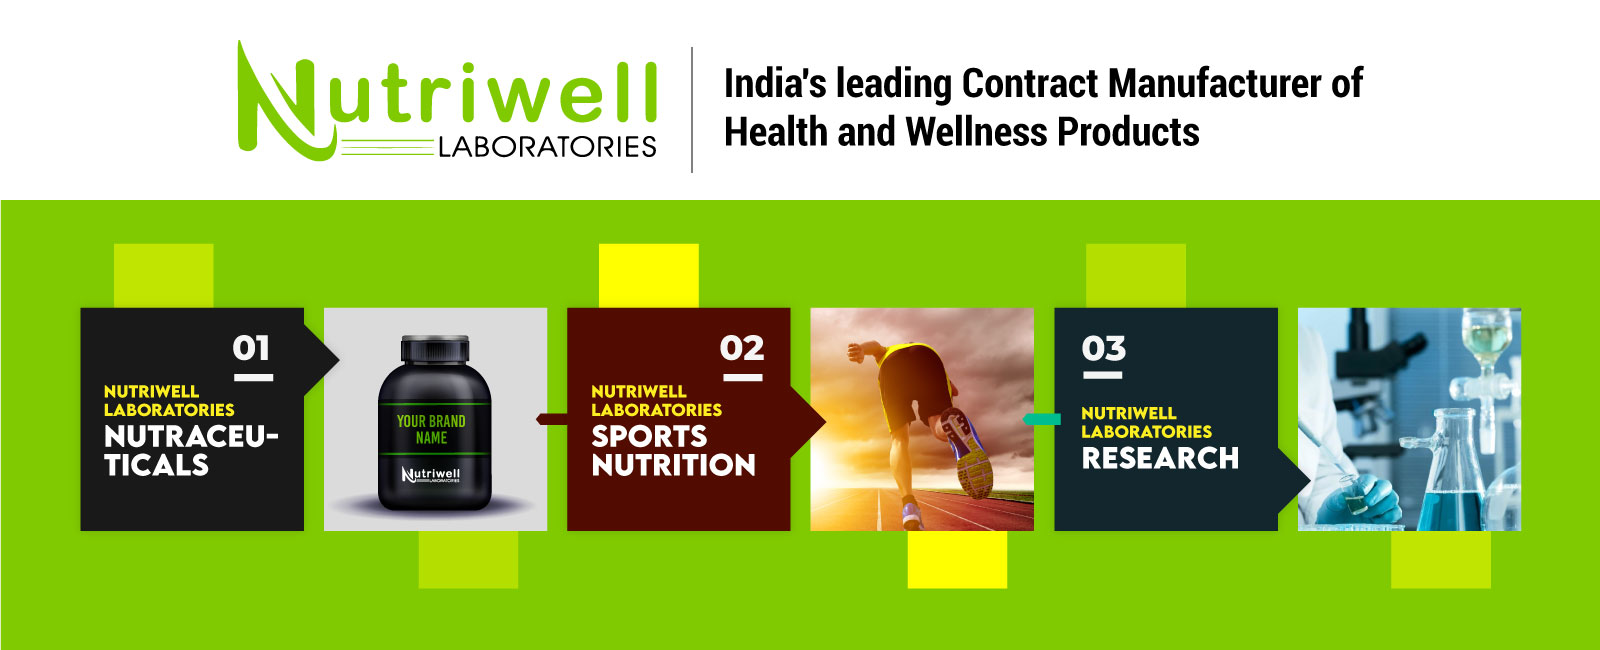 nutriwell laboratories protein powder manufacturers in india